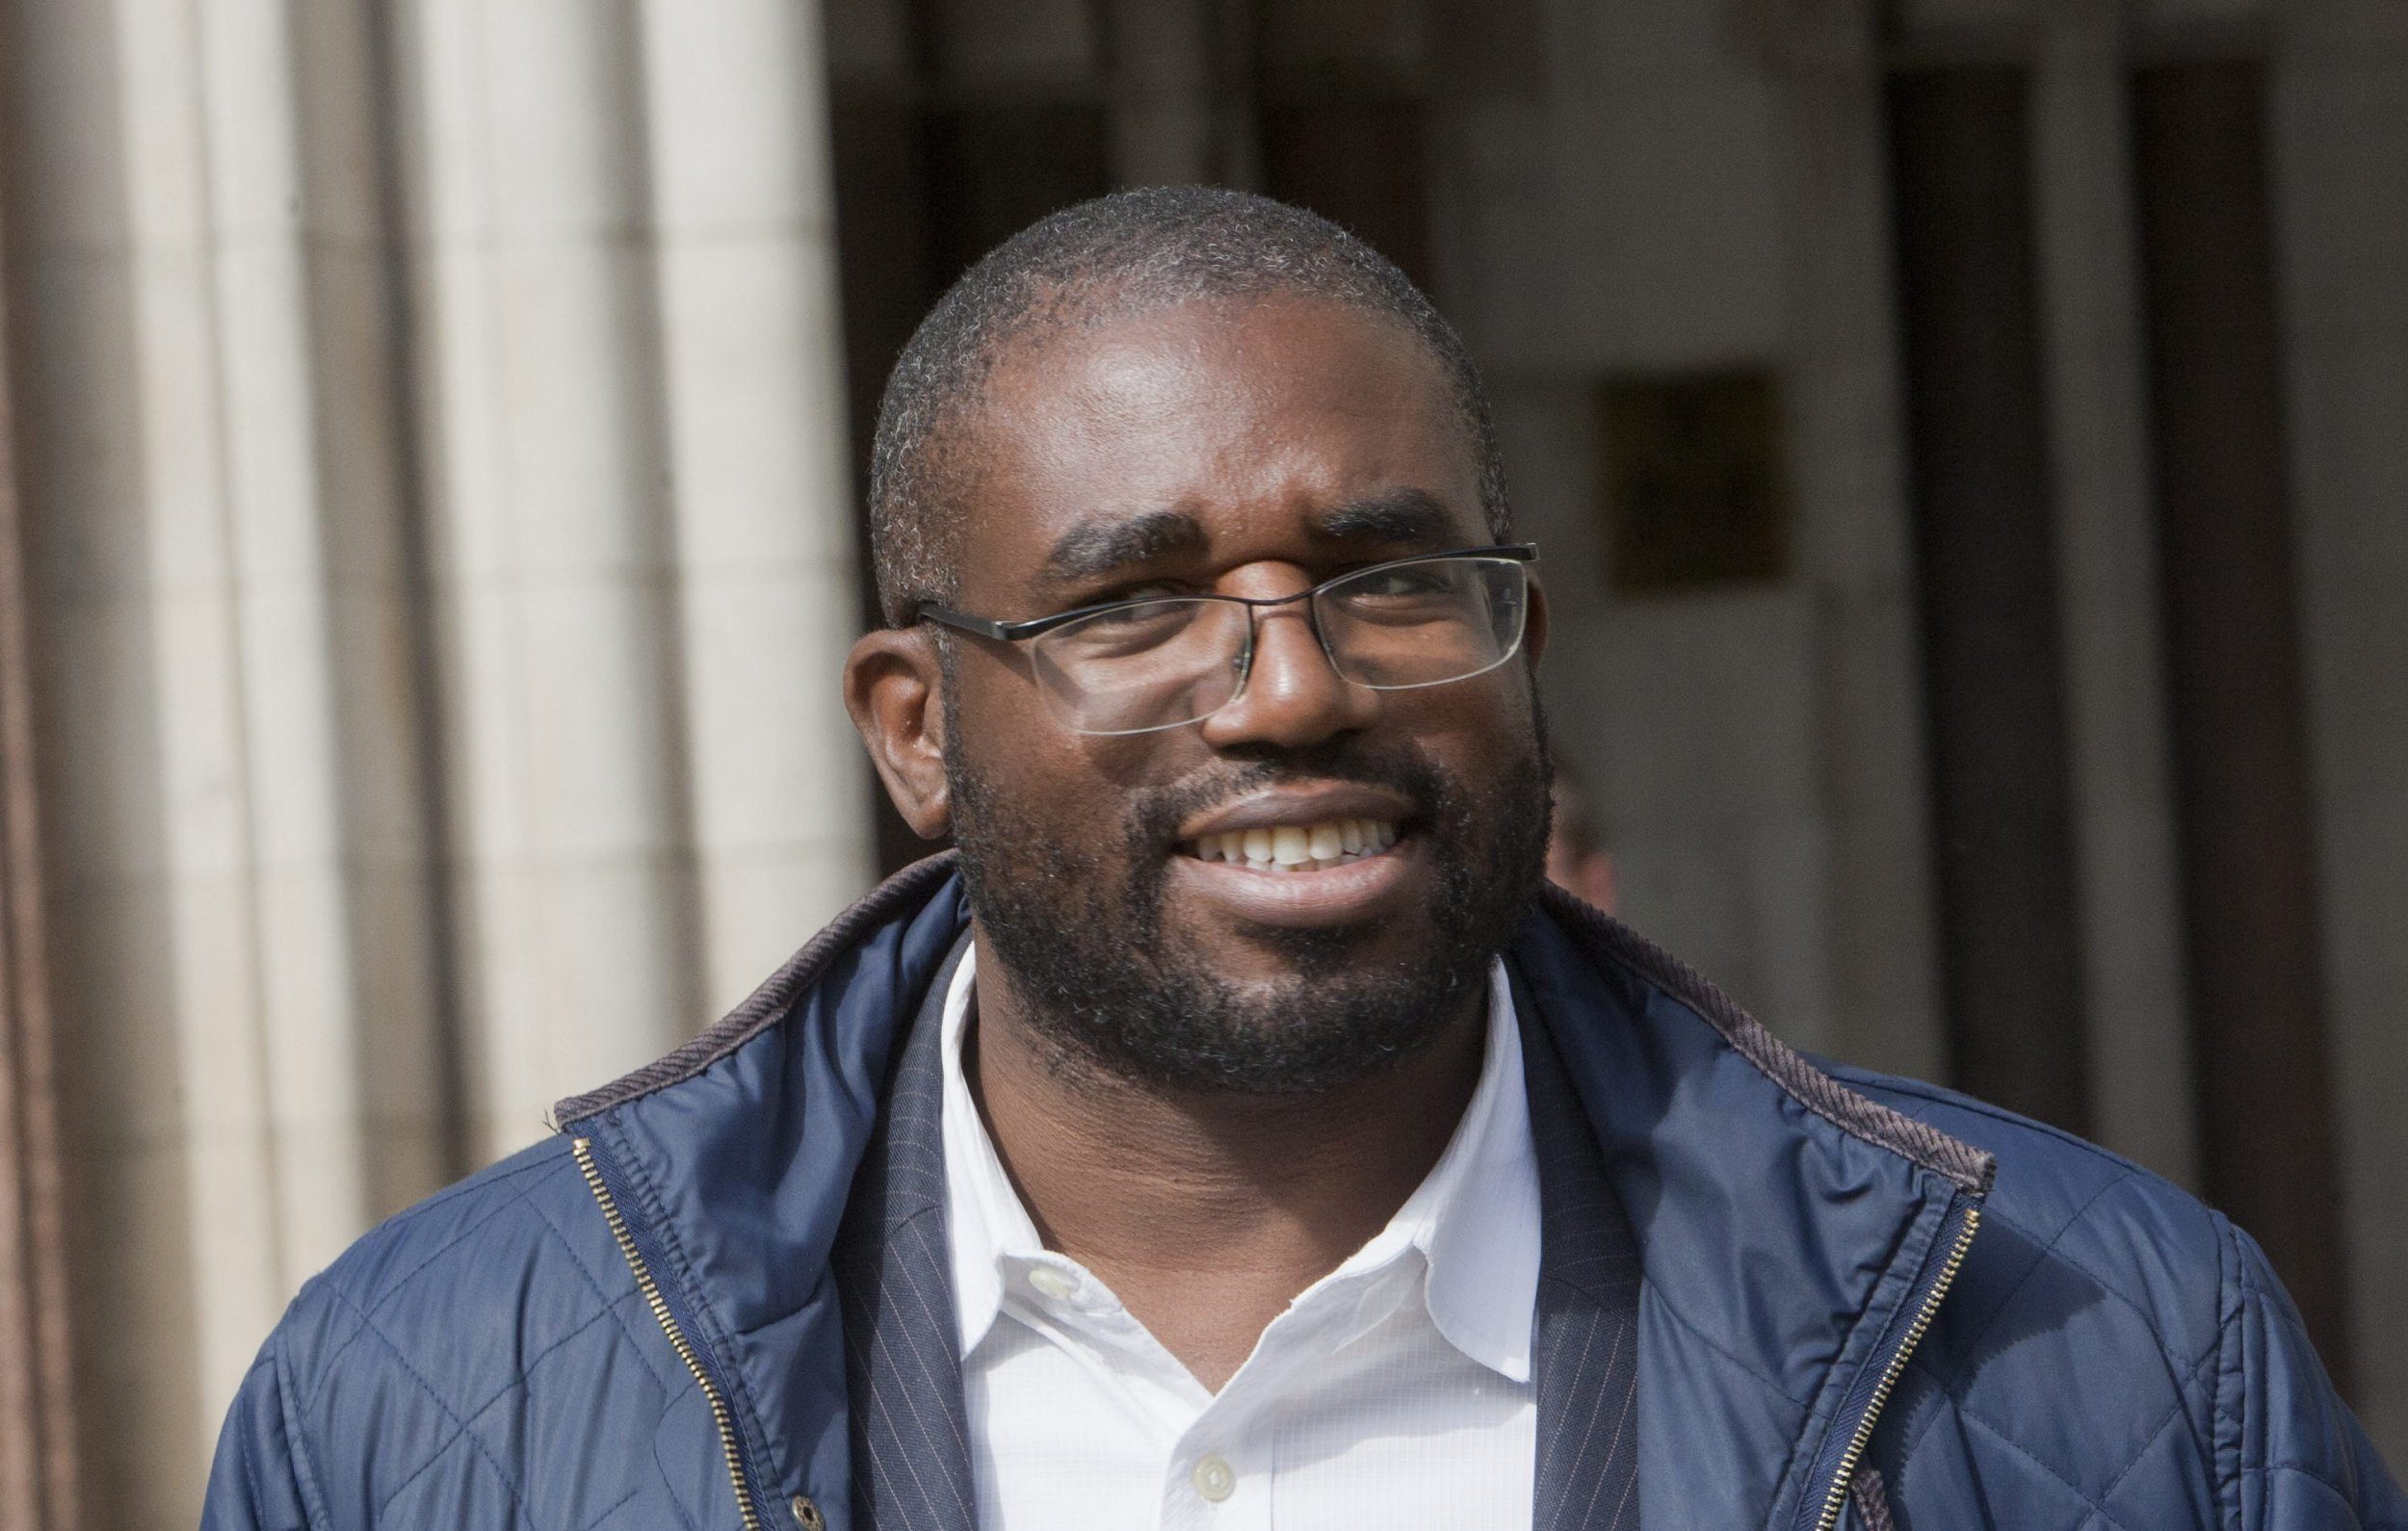 MP David Lammy fined over 35,000 nuisance calls about London Mayor election